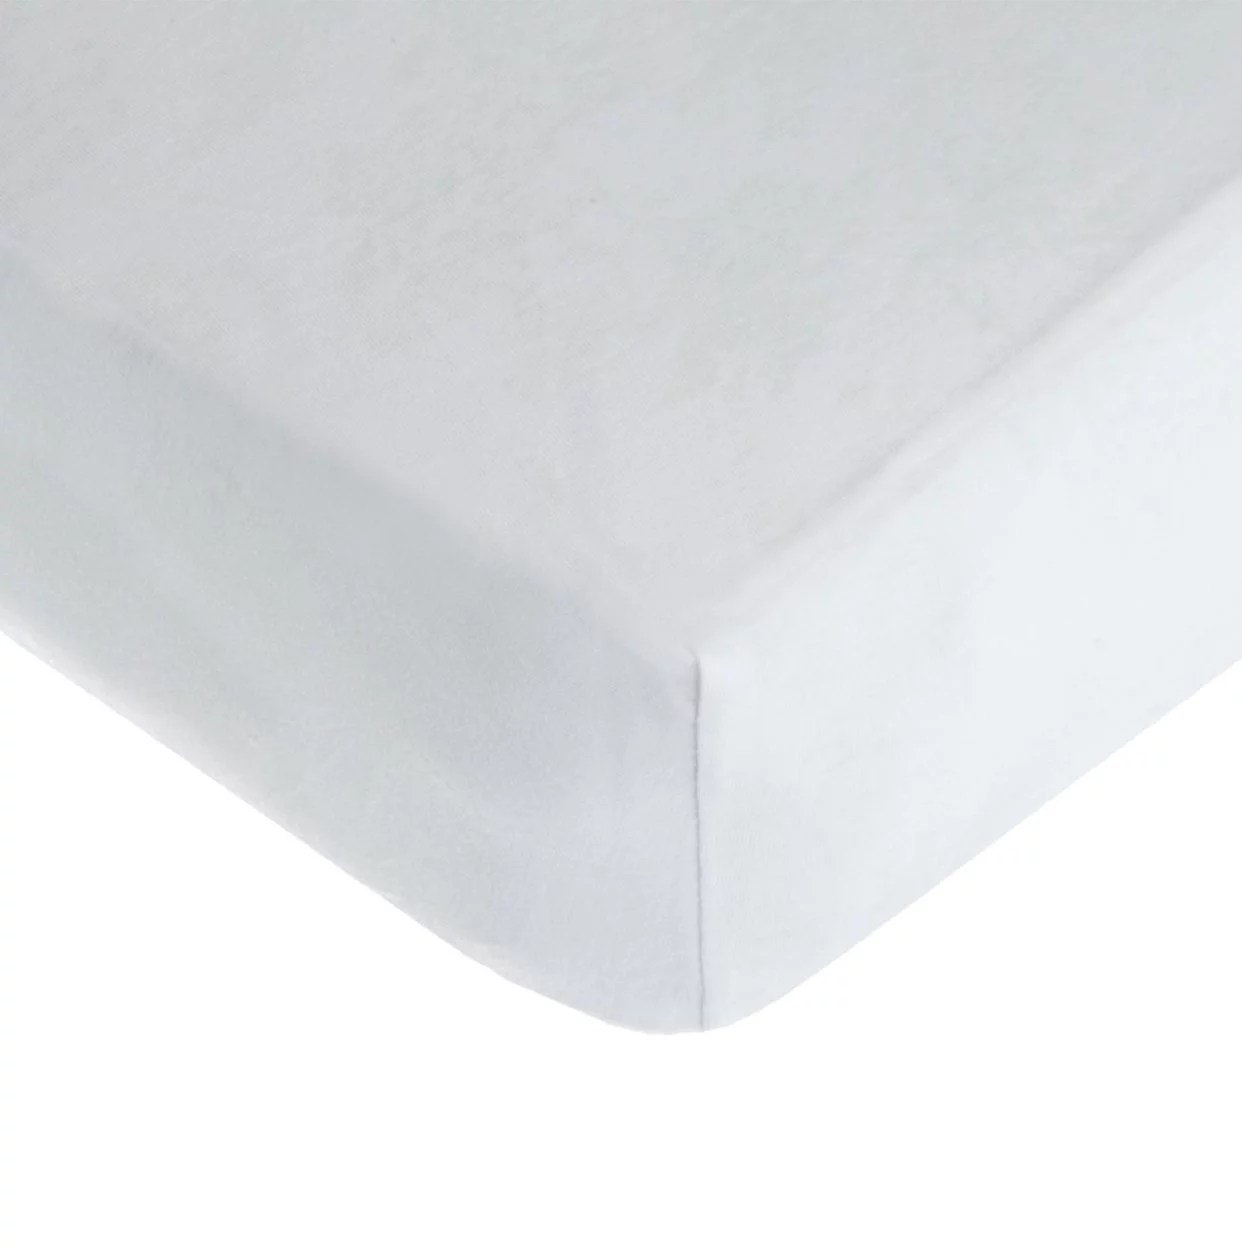 American Baby Co. Cotton Jersey Knit Fitted Mini Crib Sheet, White